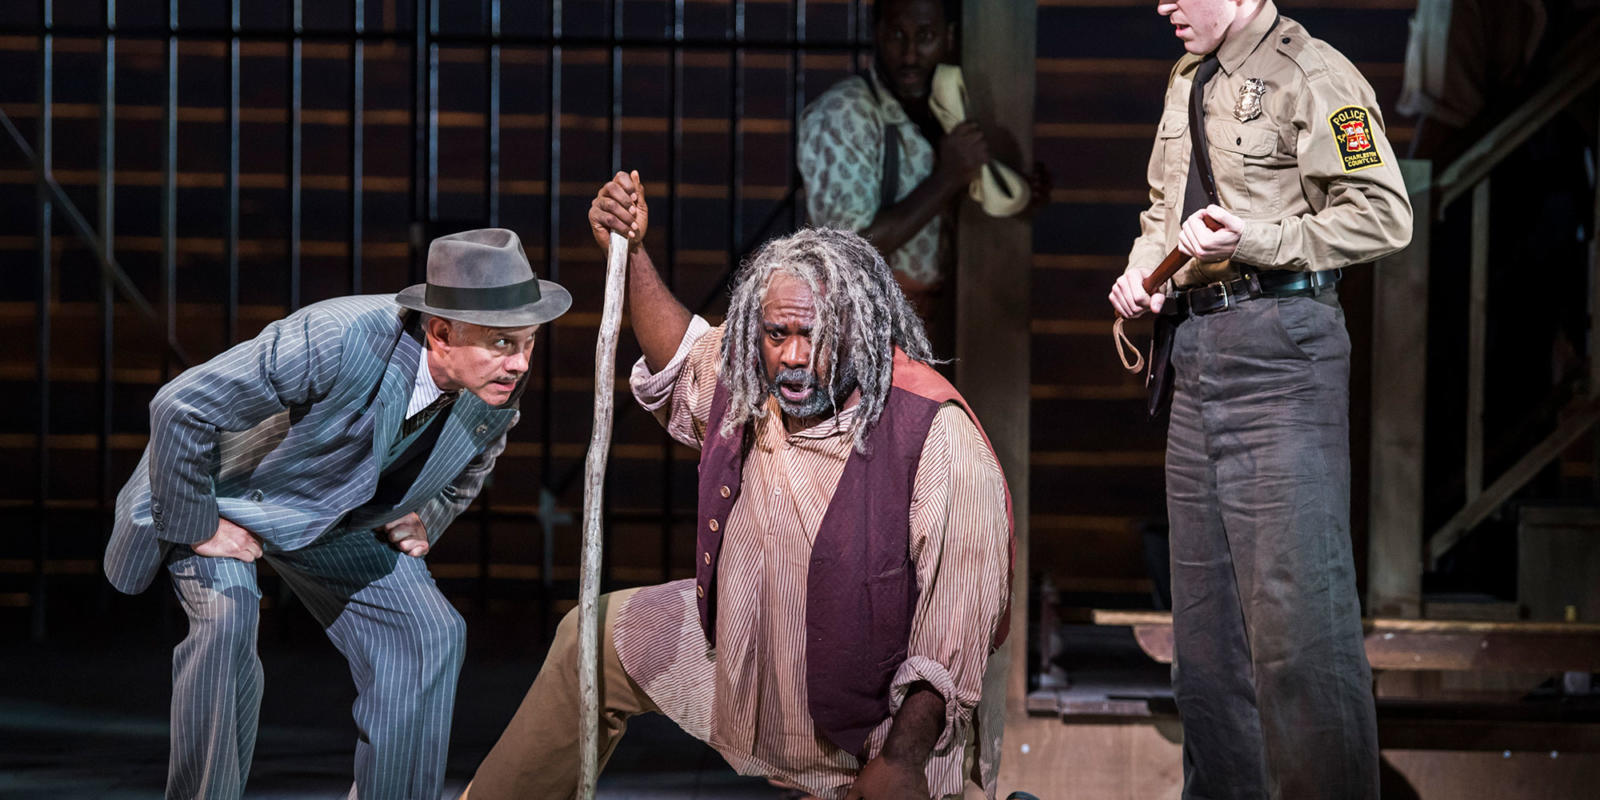 ENO Porgy and Bess: Stephen Pallister Ronald Samm Christian Hurst (c) Tristram Kenton